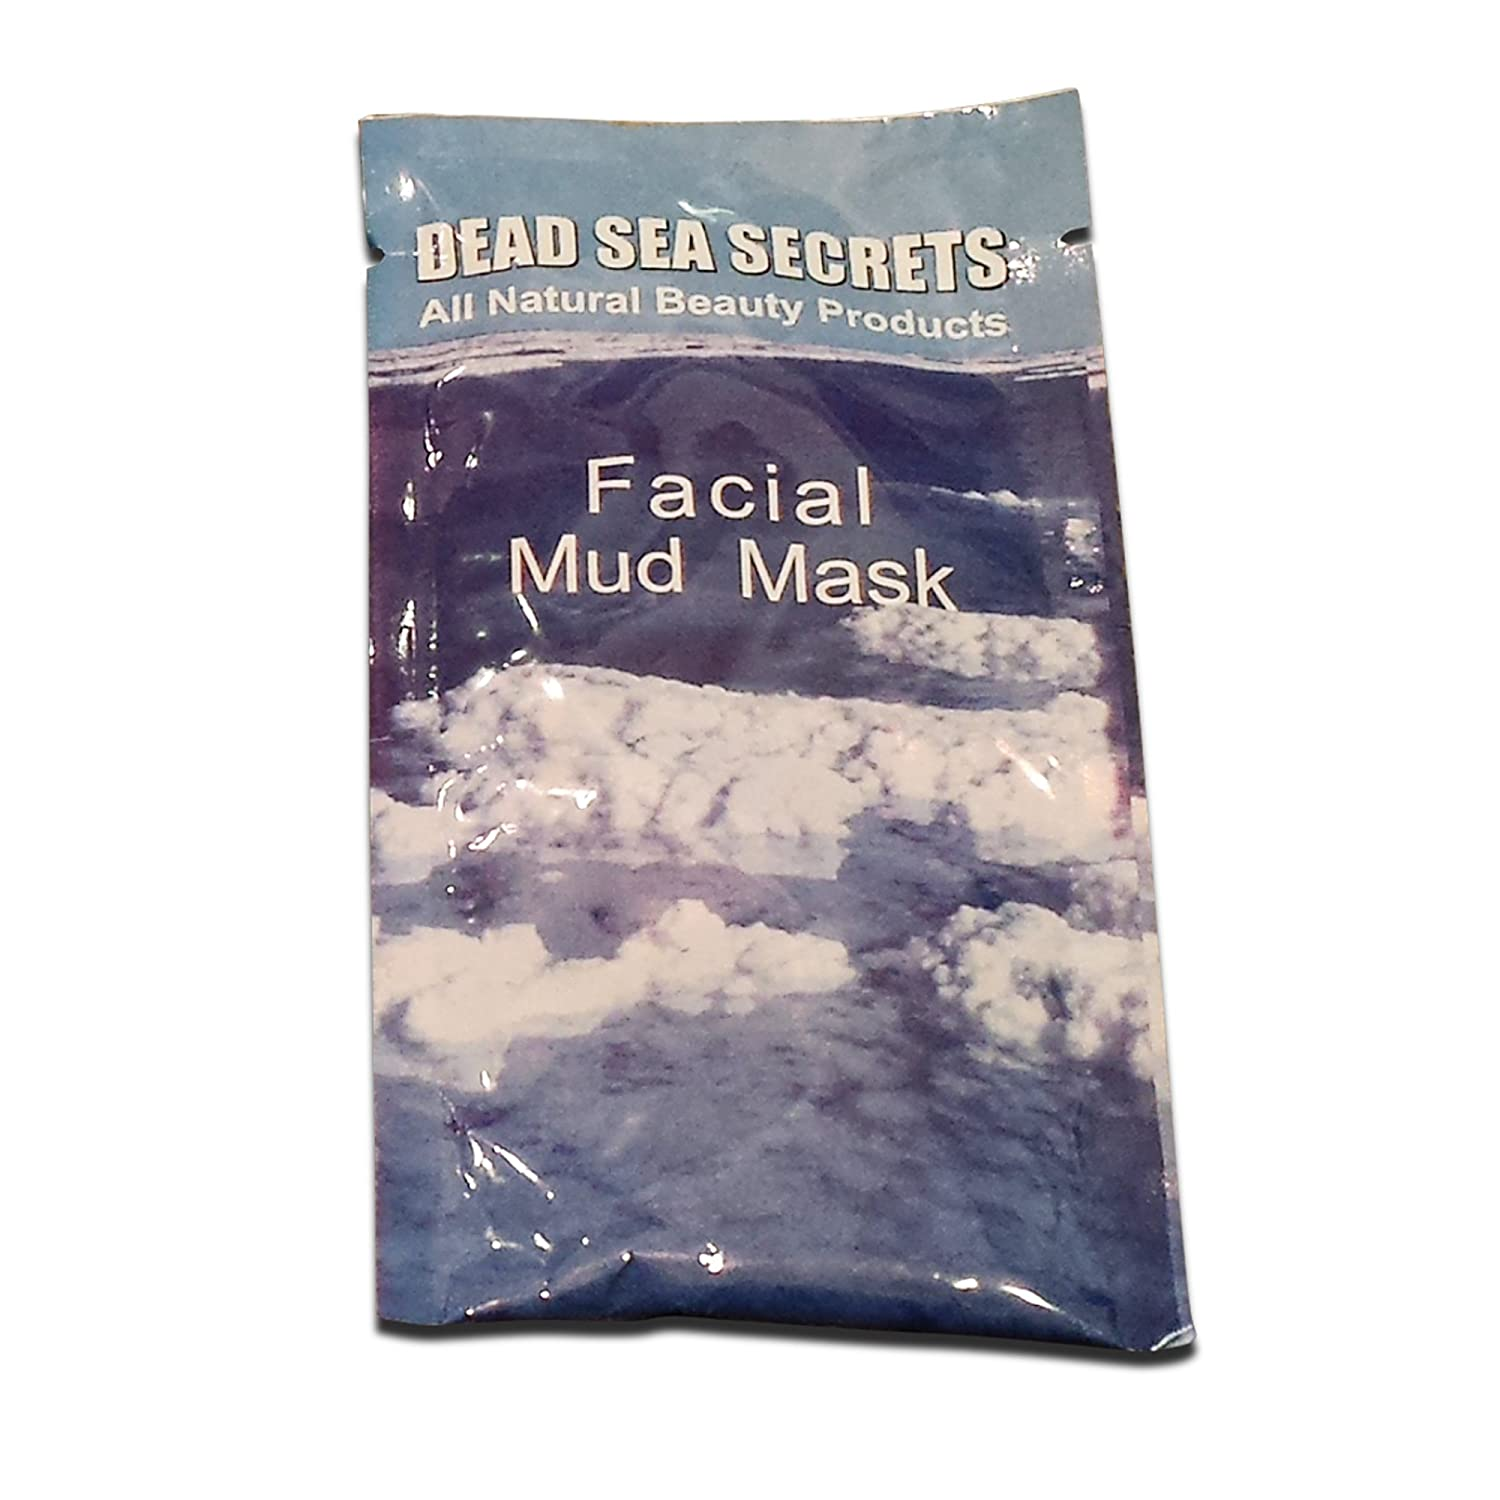 Dead Sea Facial Mud Mask✔ All Natural Organic Spa Quality Skin Care✔ Cleanses, Exfoliates, Purifies, Moisturizes, Rejuvenates✔ Excellent for Acne, Blemishes, Eczema, Psoriasis✔ Anti Aging Firming & Lifting ✔ 100% Money Back Guarantee Northbridge Tradin